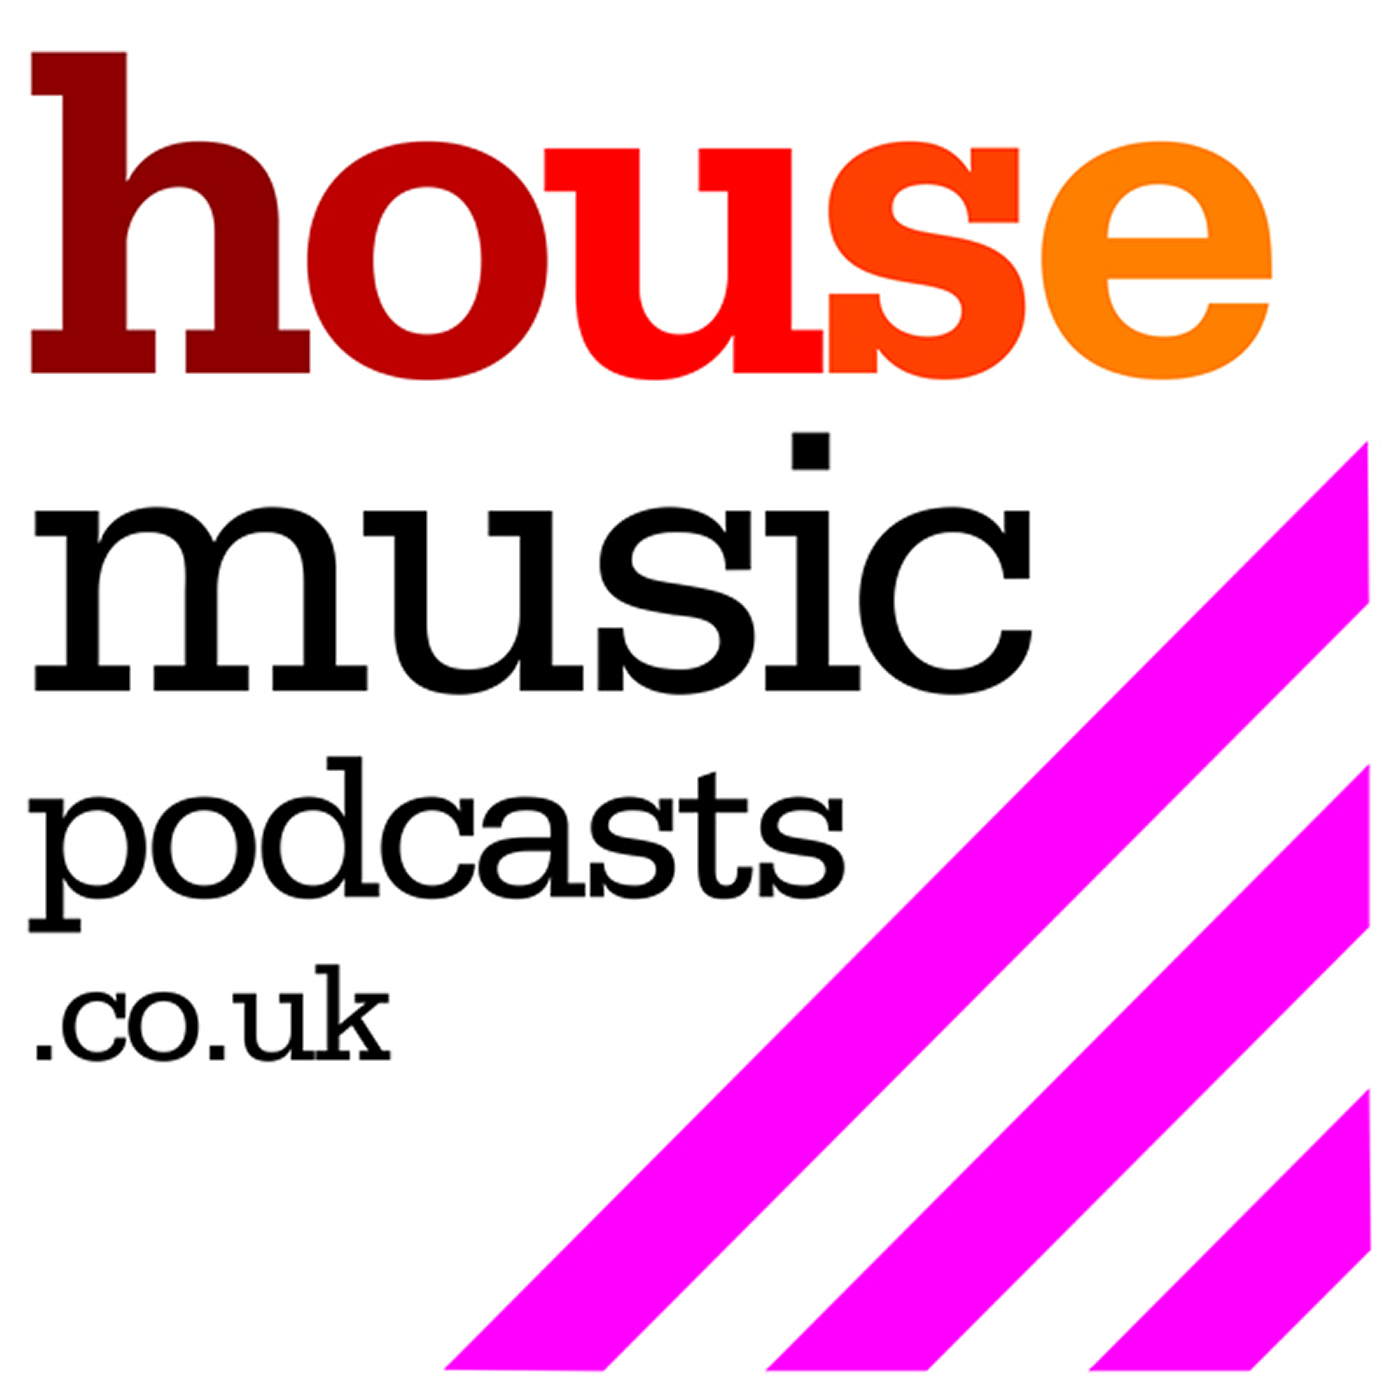 House Music Podcasts » Steven Stone